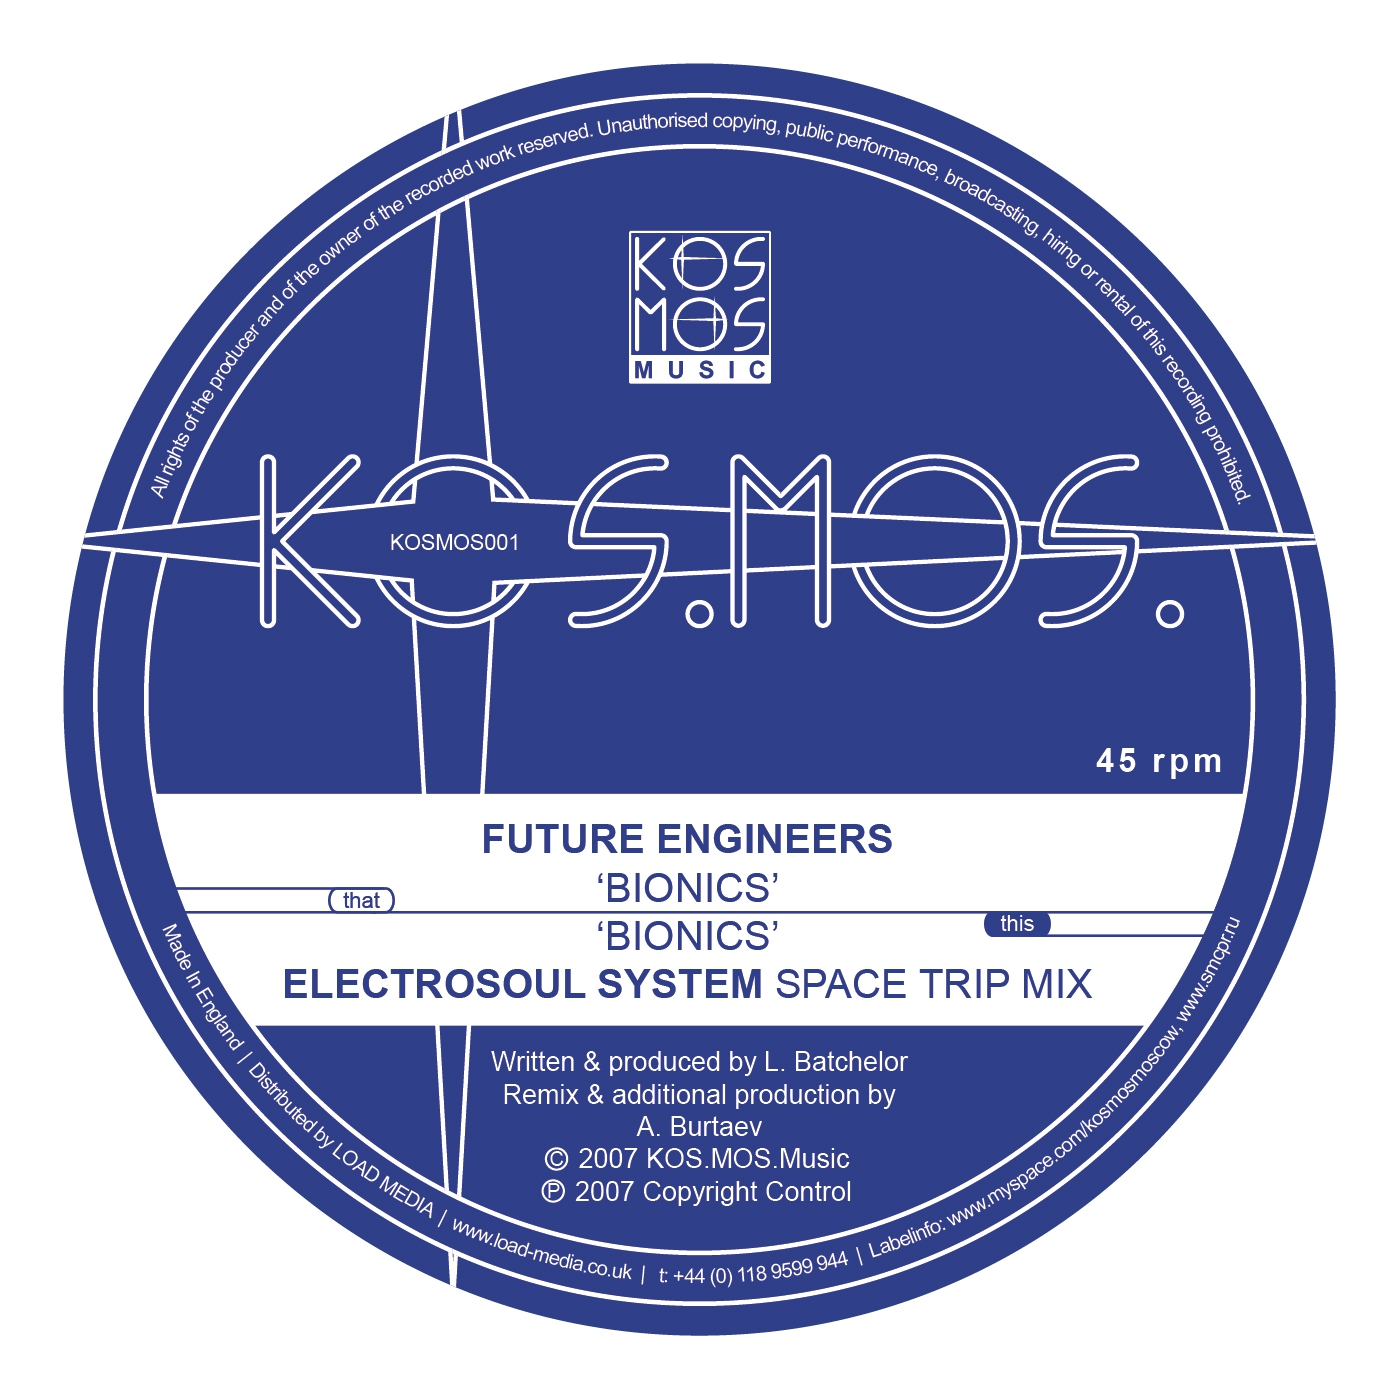 Future Engineers - Bionics (Electrosoul System Space Trip Mix)